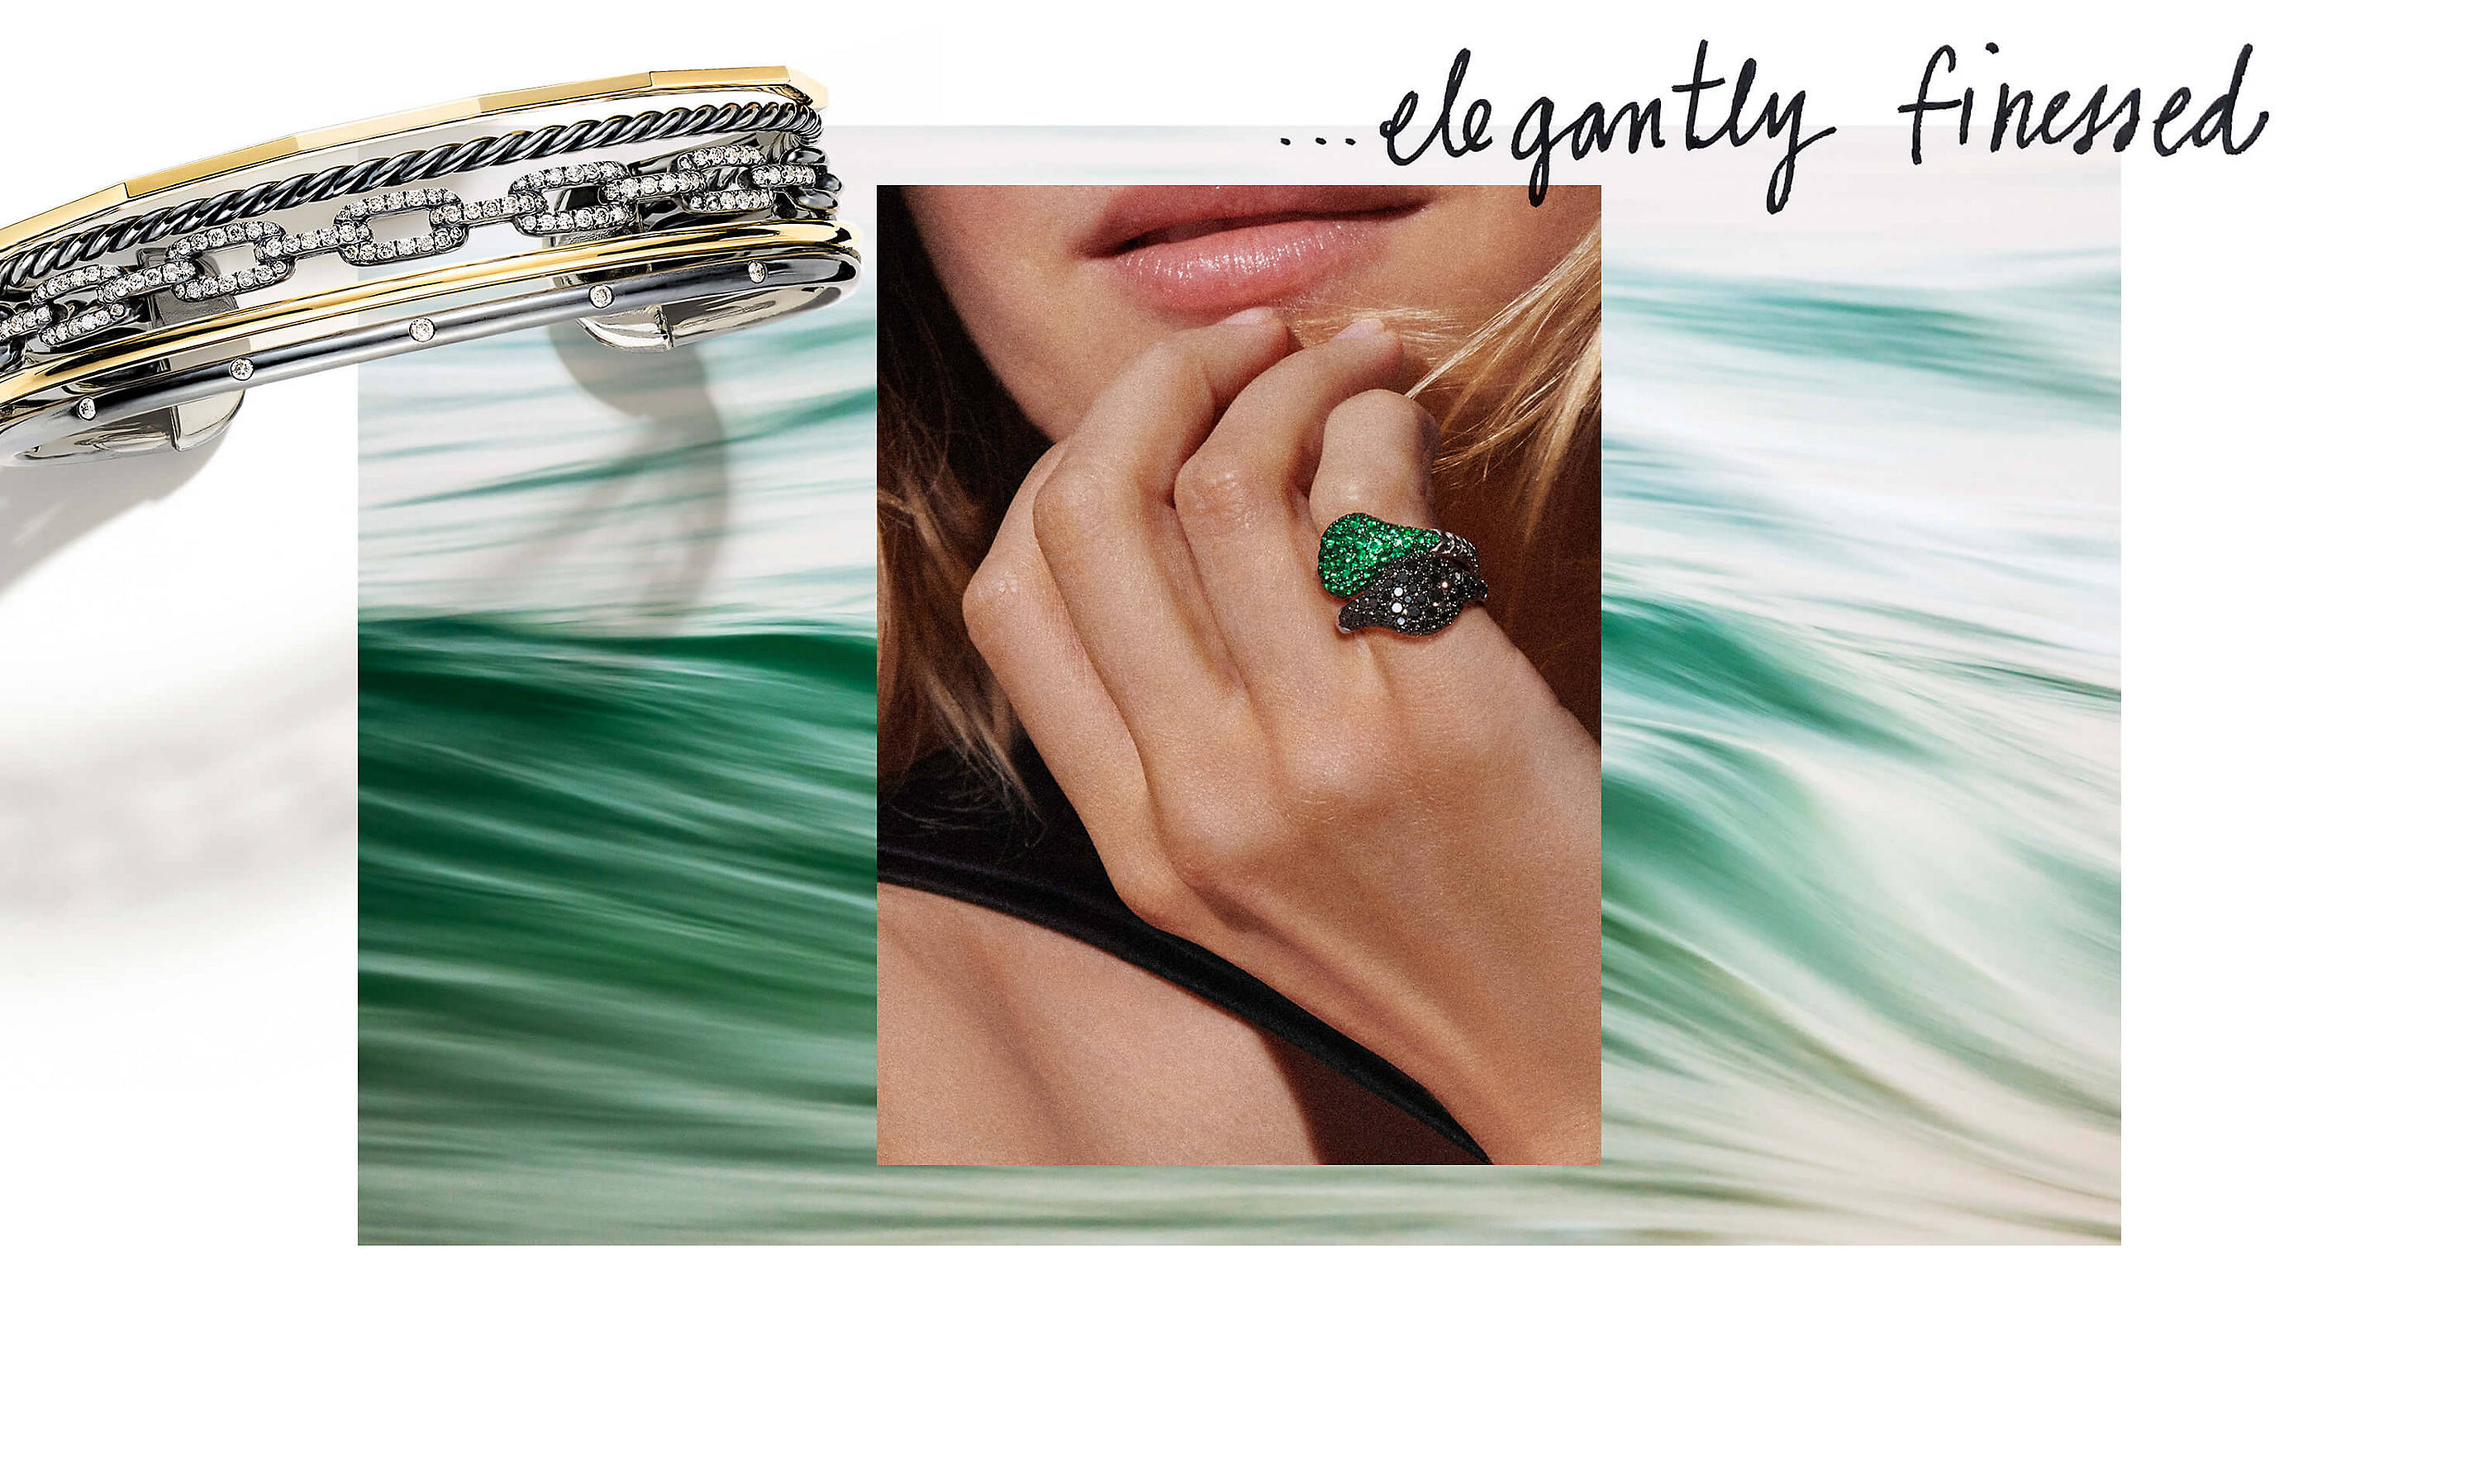 "Several photos are shown juxtaposed into an overlapping collage. Behind every image is an abstract photo that appears to show the texture of running, green-colored water. Overlaid over the top-left corner of the water image is a David Yurman five-row Stax cuff casting a long shadow. The bracelet is crafted from blackened sterling silver with 18K yellow gold and white diamonds. Overlaid over the top-right corner of the water image is a black-and-white photo showing the words ""…elegantly finessed"" written by hand. Overlaid over the center of the water image is a color photo showing a close-up of a woman's right hand crossed in front of her with her fingers resting on her chin. On her right pinky ringer she is wearing two David Yurman Pinky Rings crafted from 18K white gold with pavé emeralds or black diamonds."